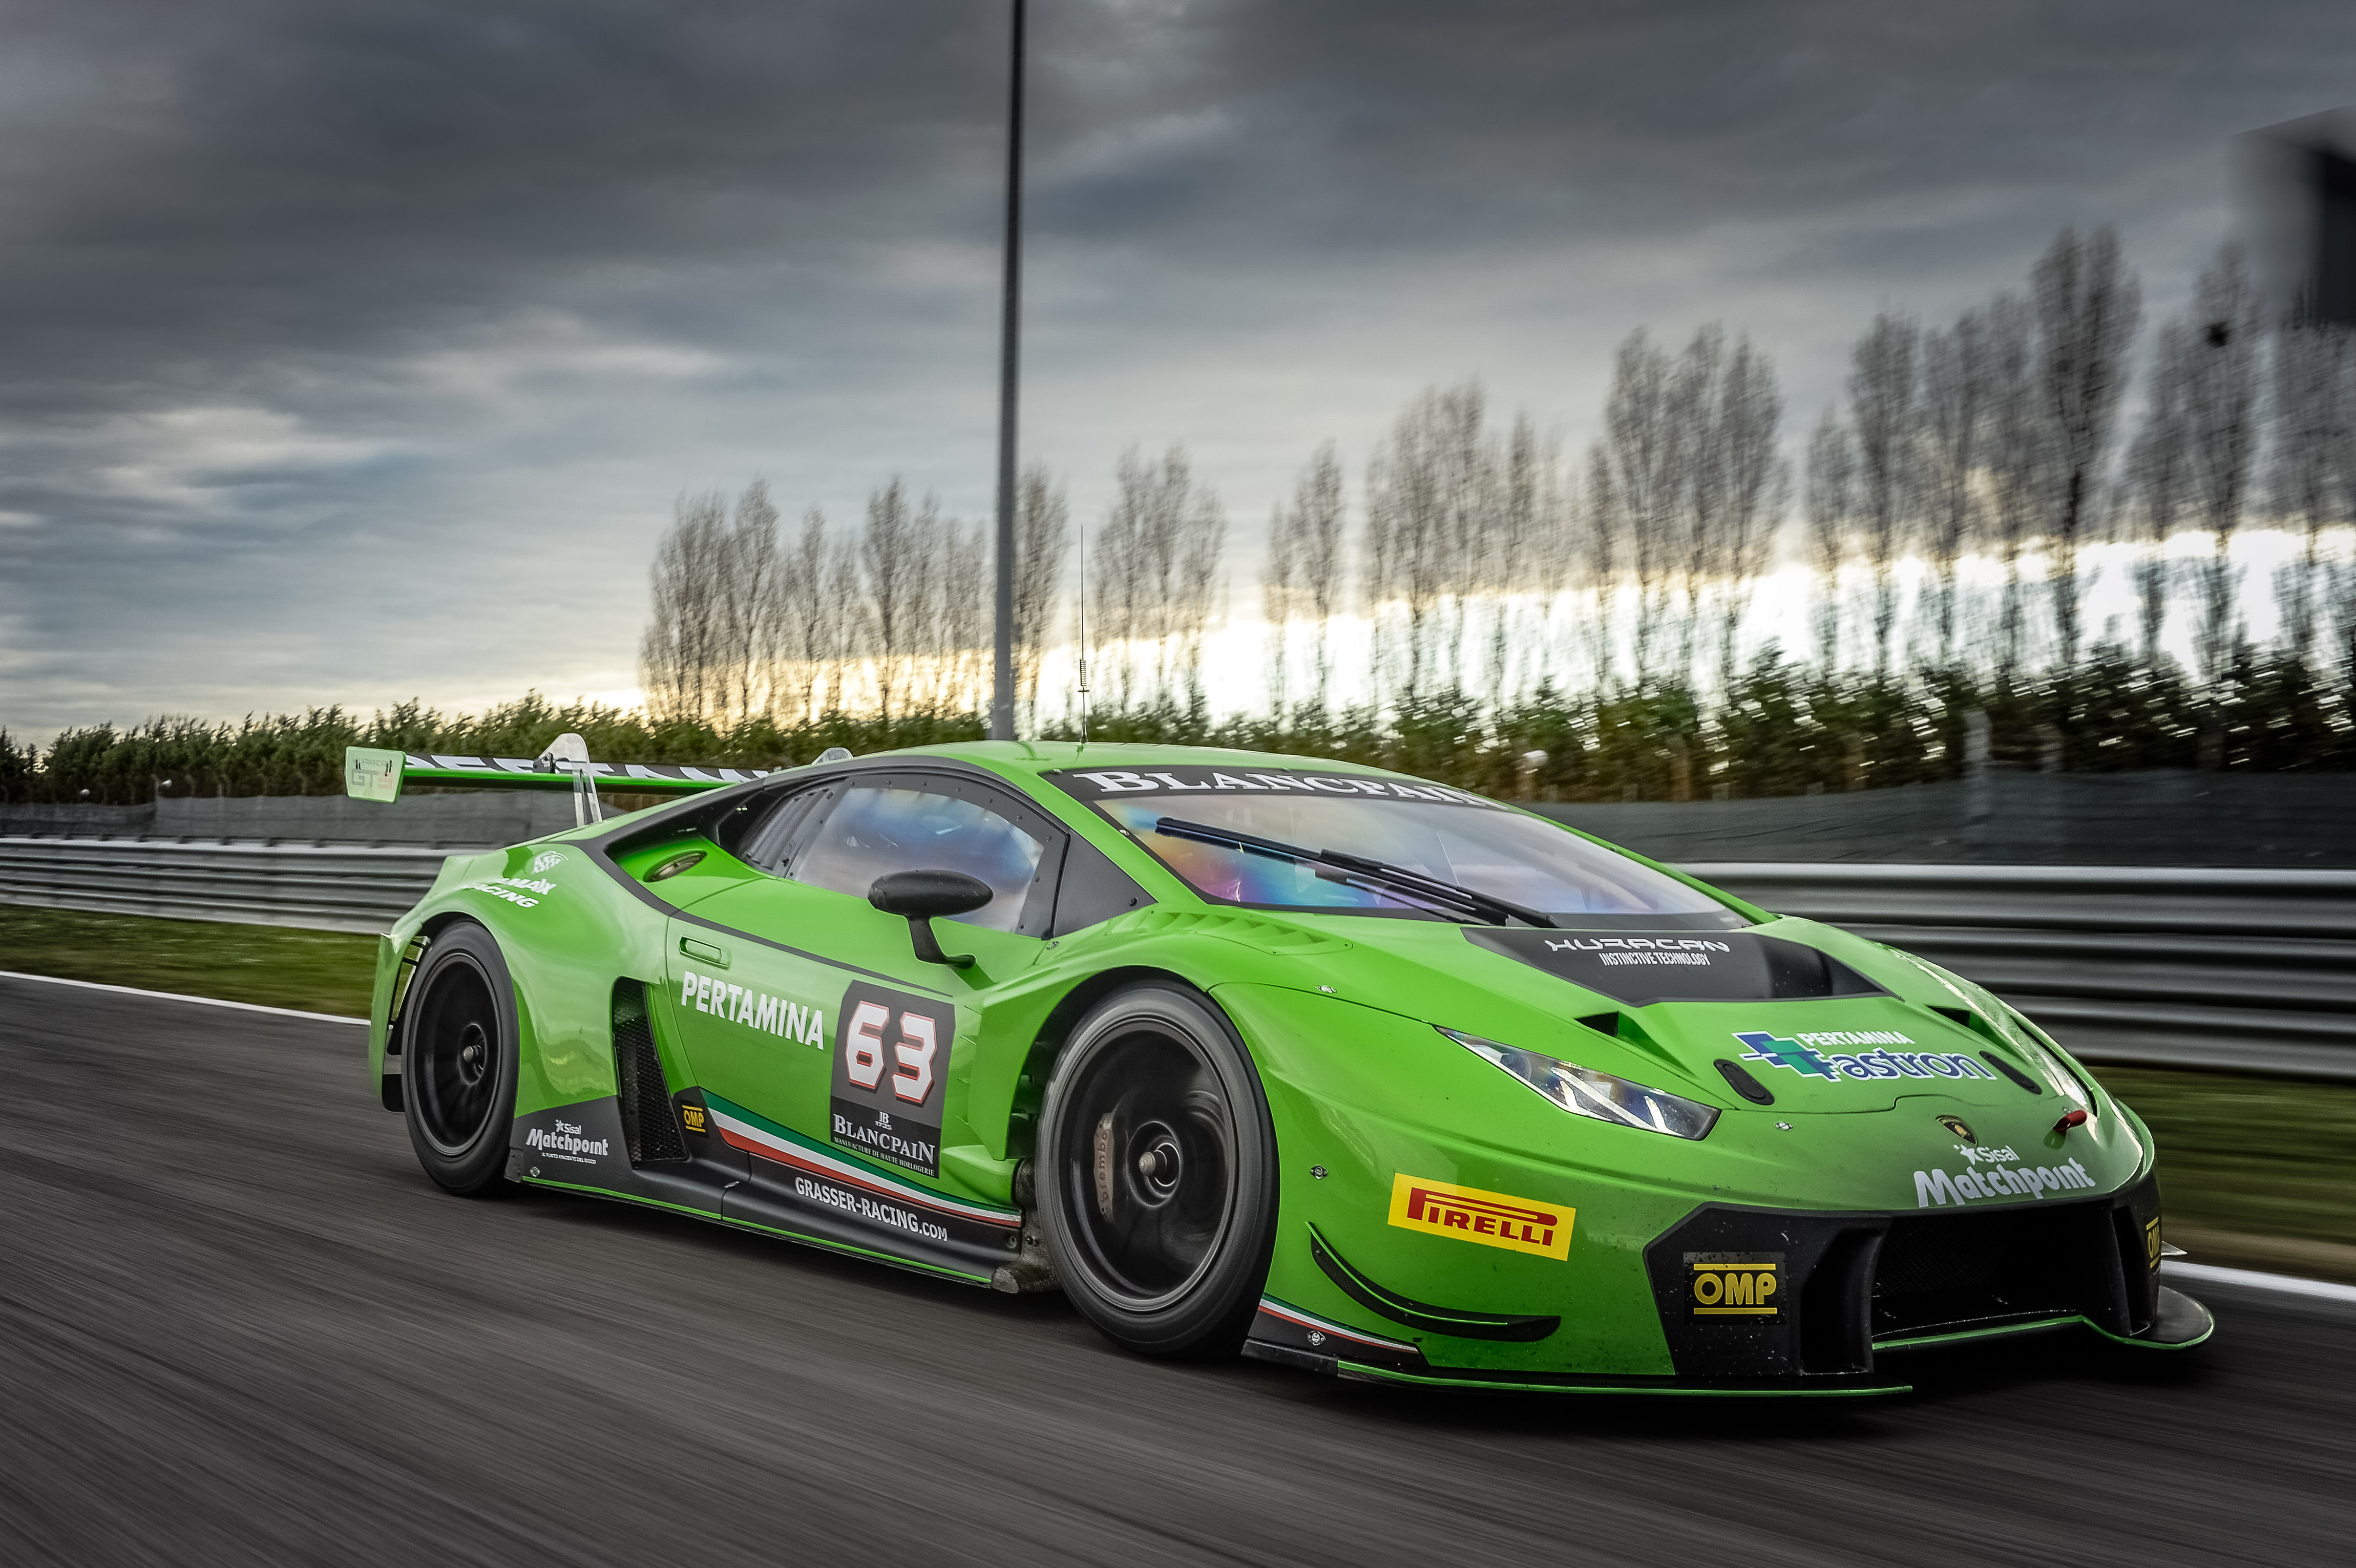 lamborghini huracan gt3 to make north american gt3 racing debut in 2016 lit. Black Bedroom Furniture Sets. Home Design Ideas